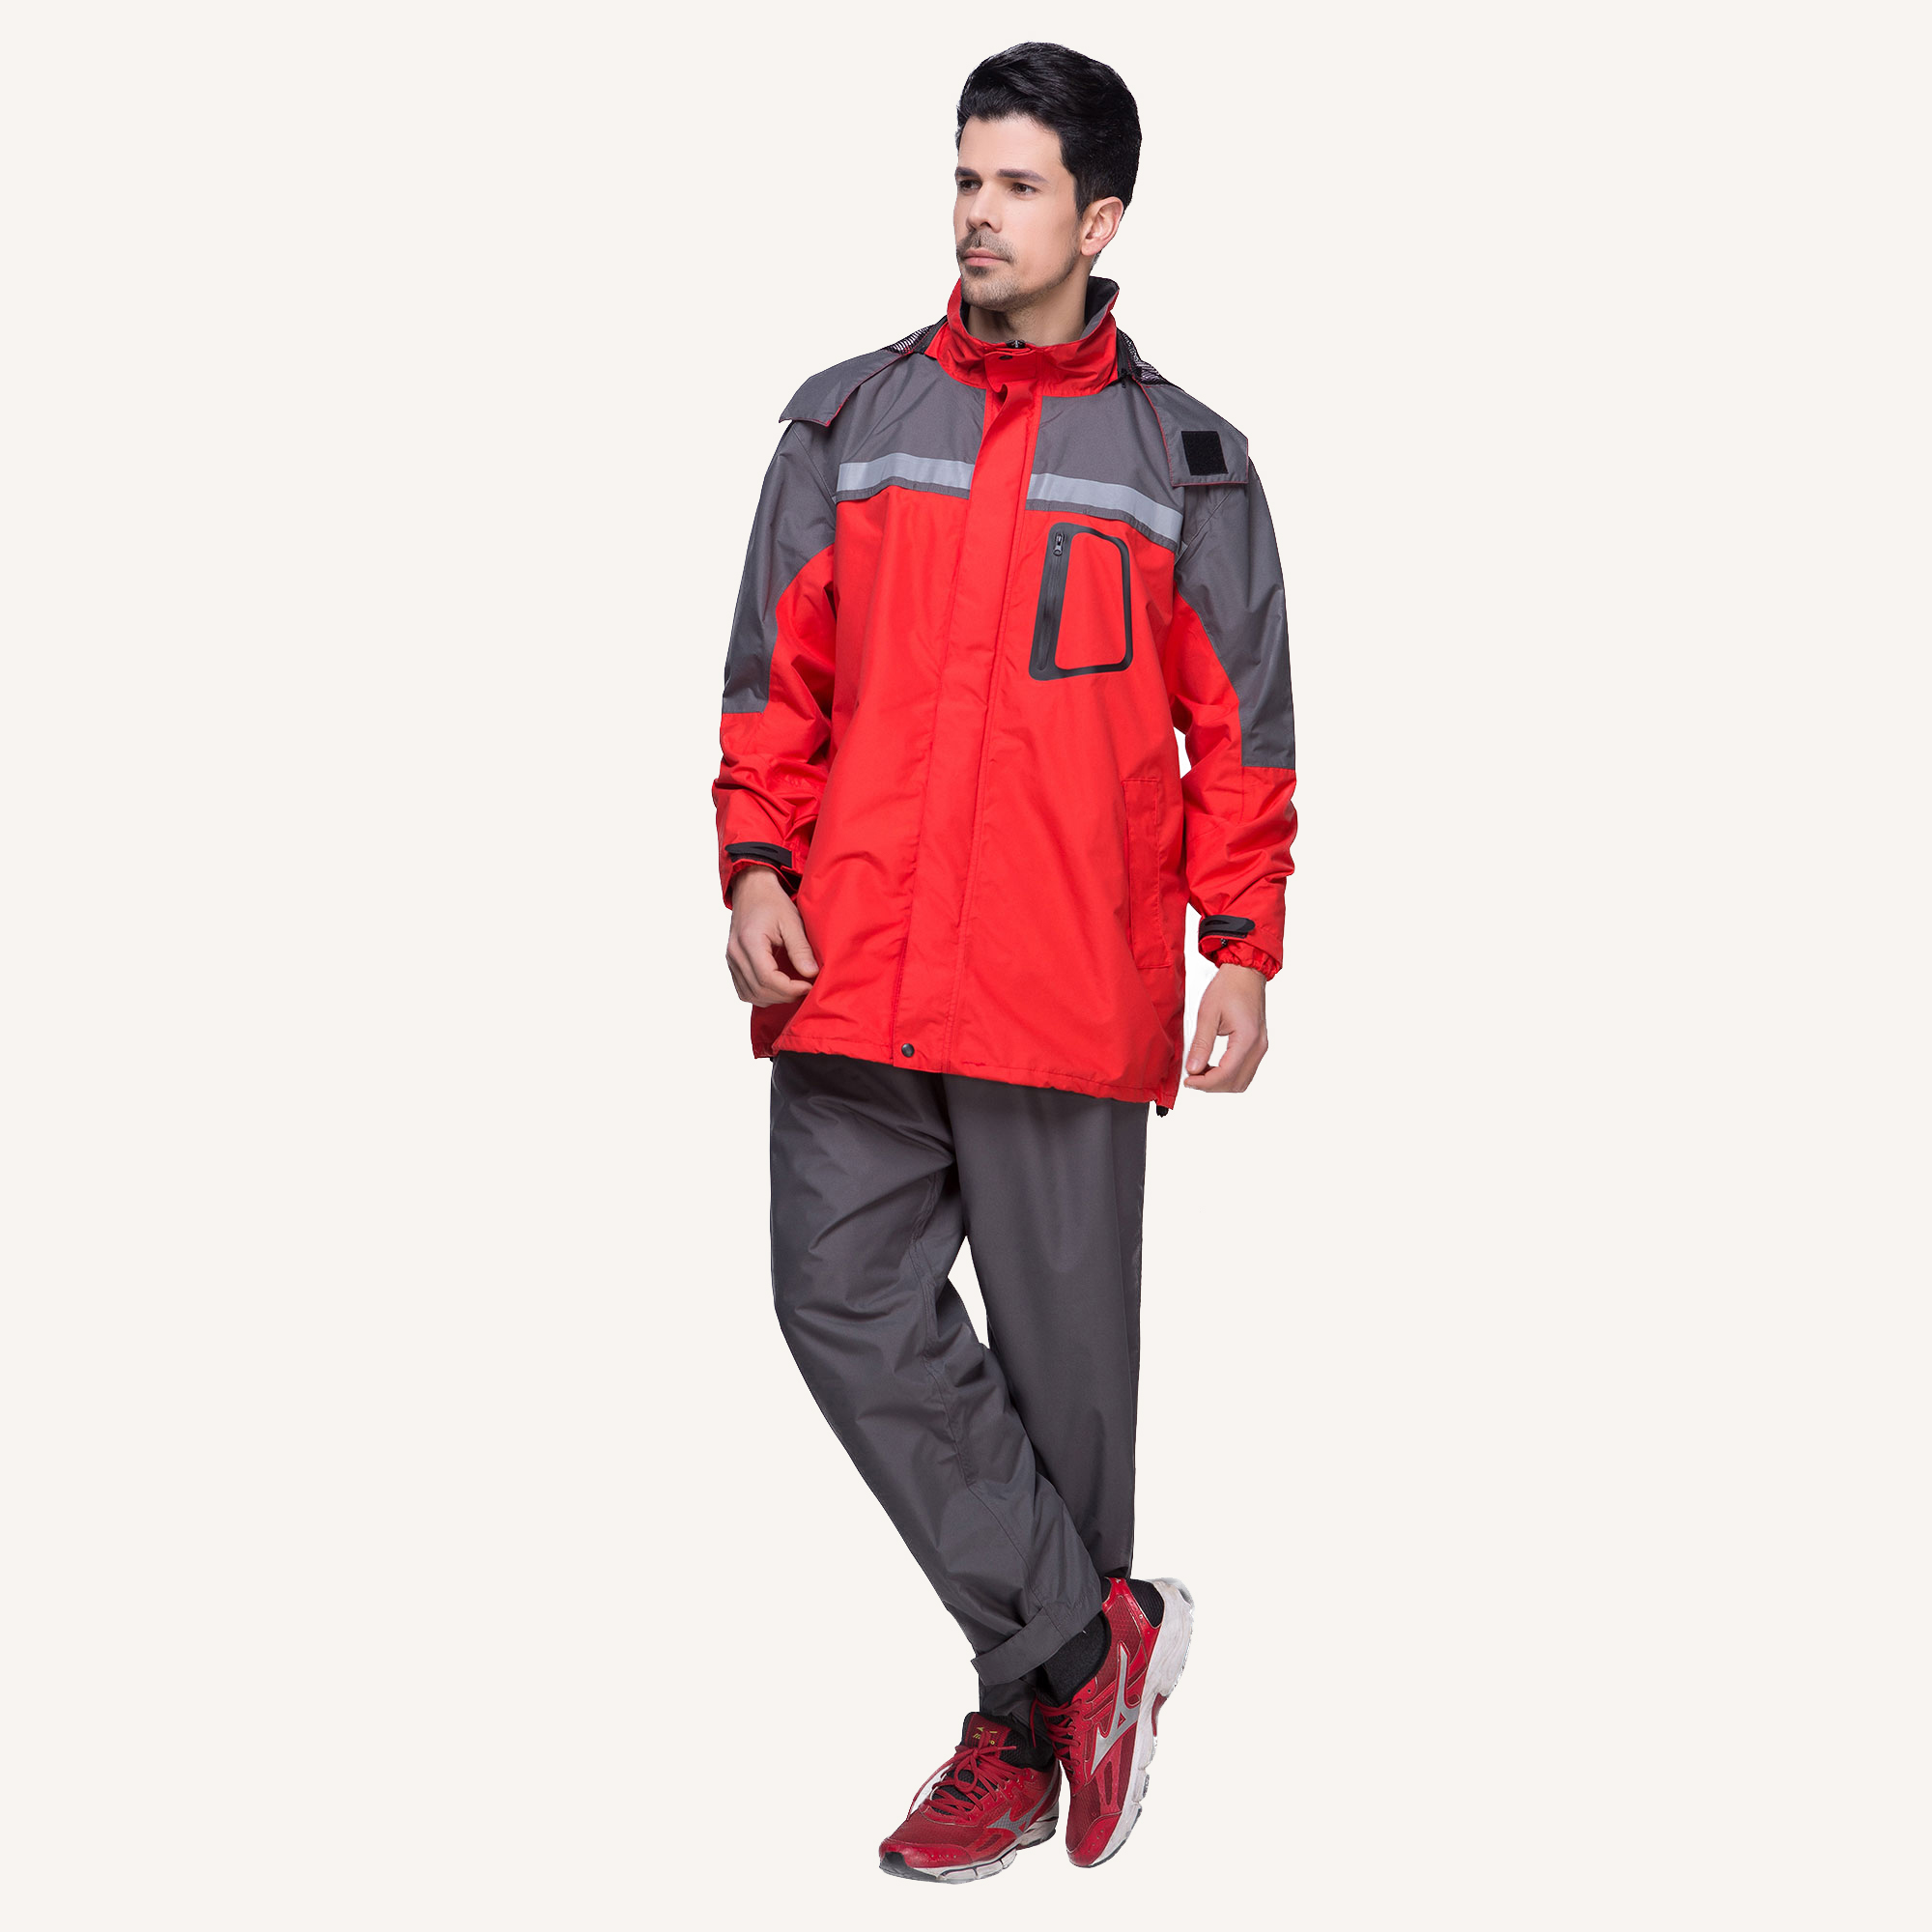 6850 Multi-color Sports Suit Waterproof Rain Jacket